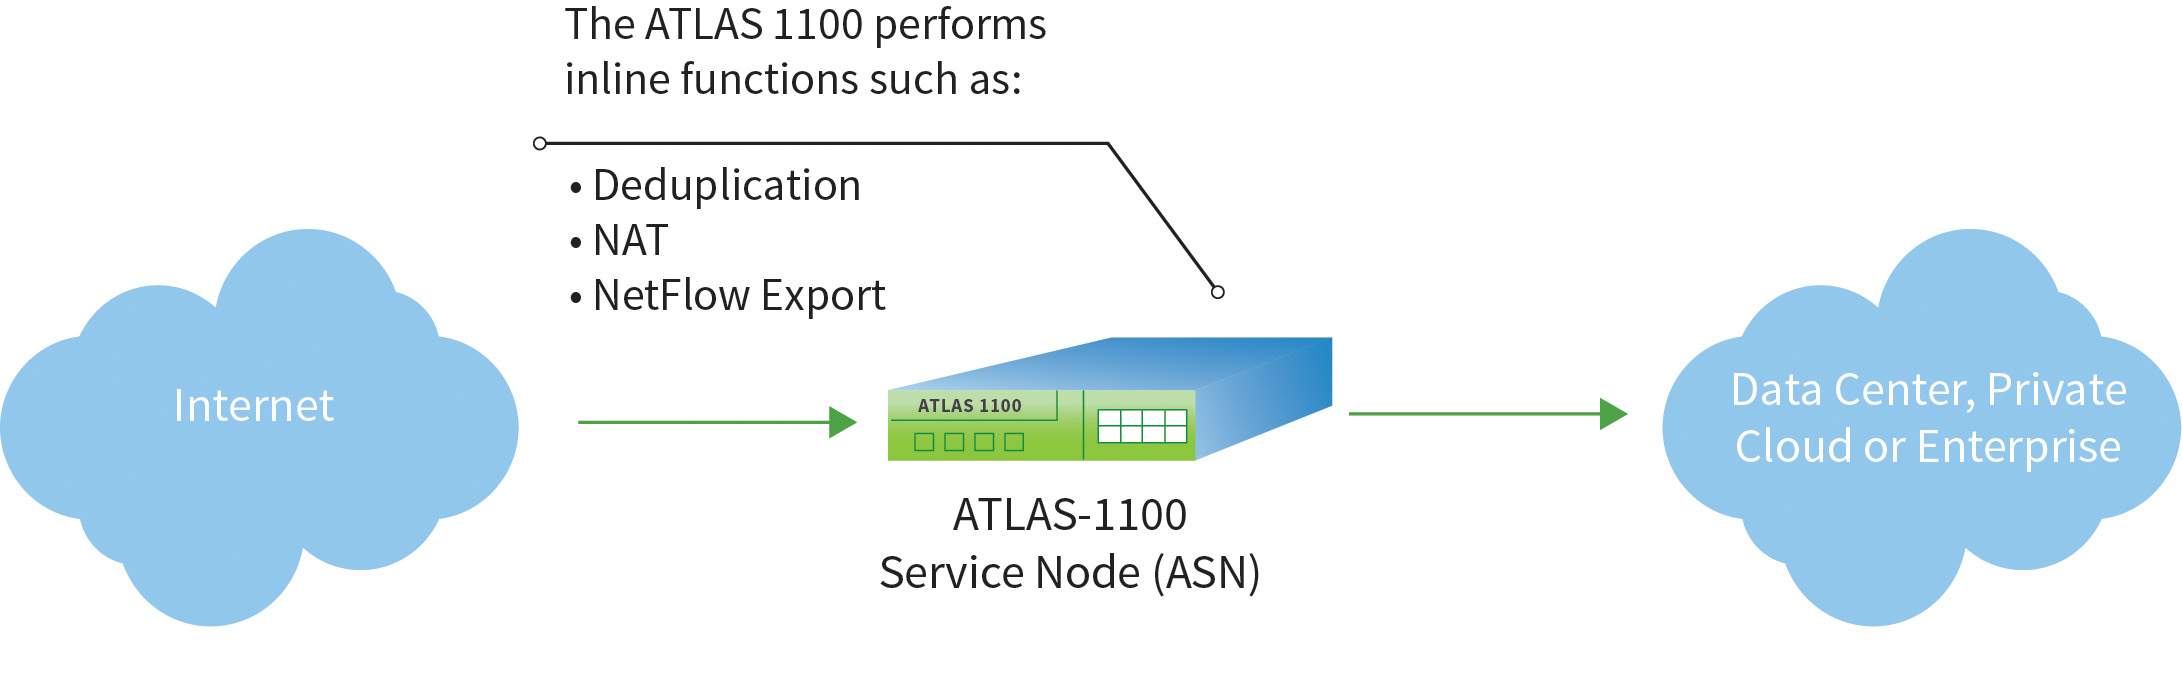 ATLAS-1100 Service Node Diagram